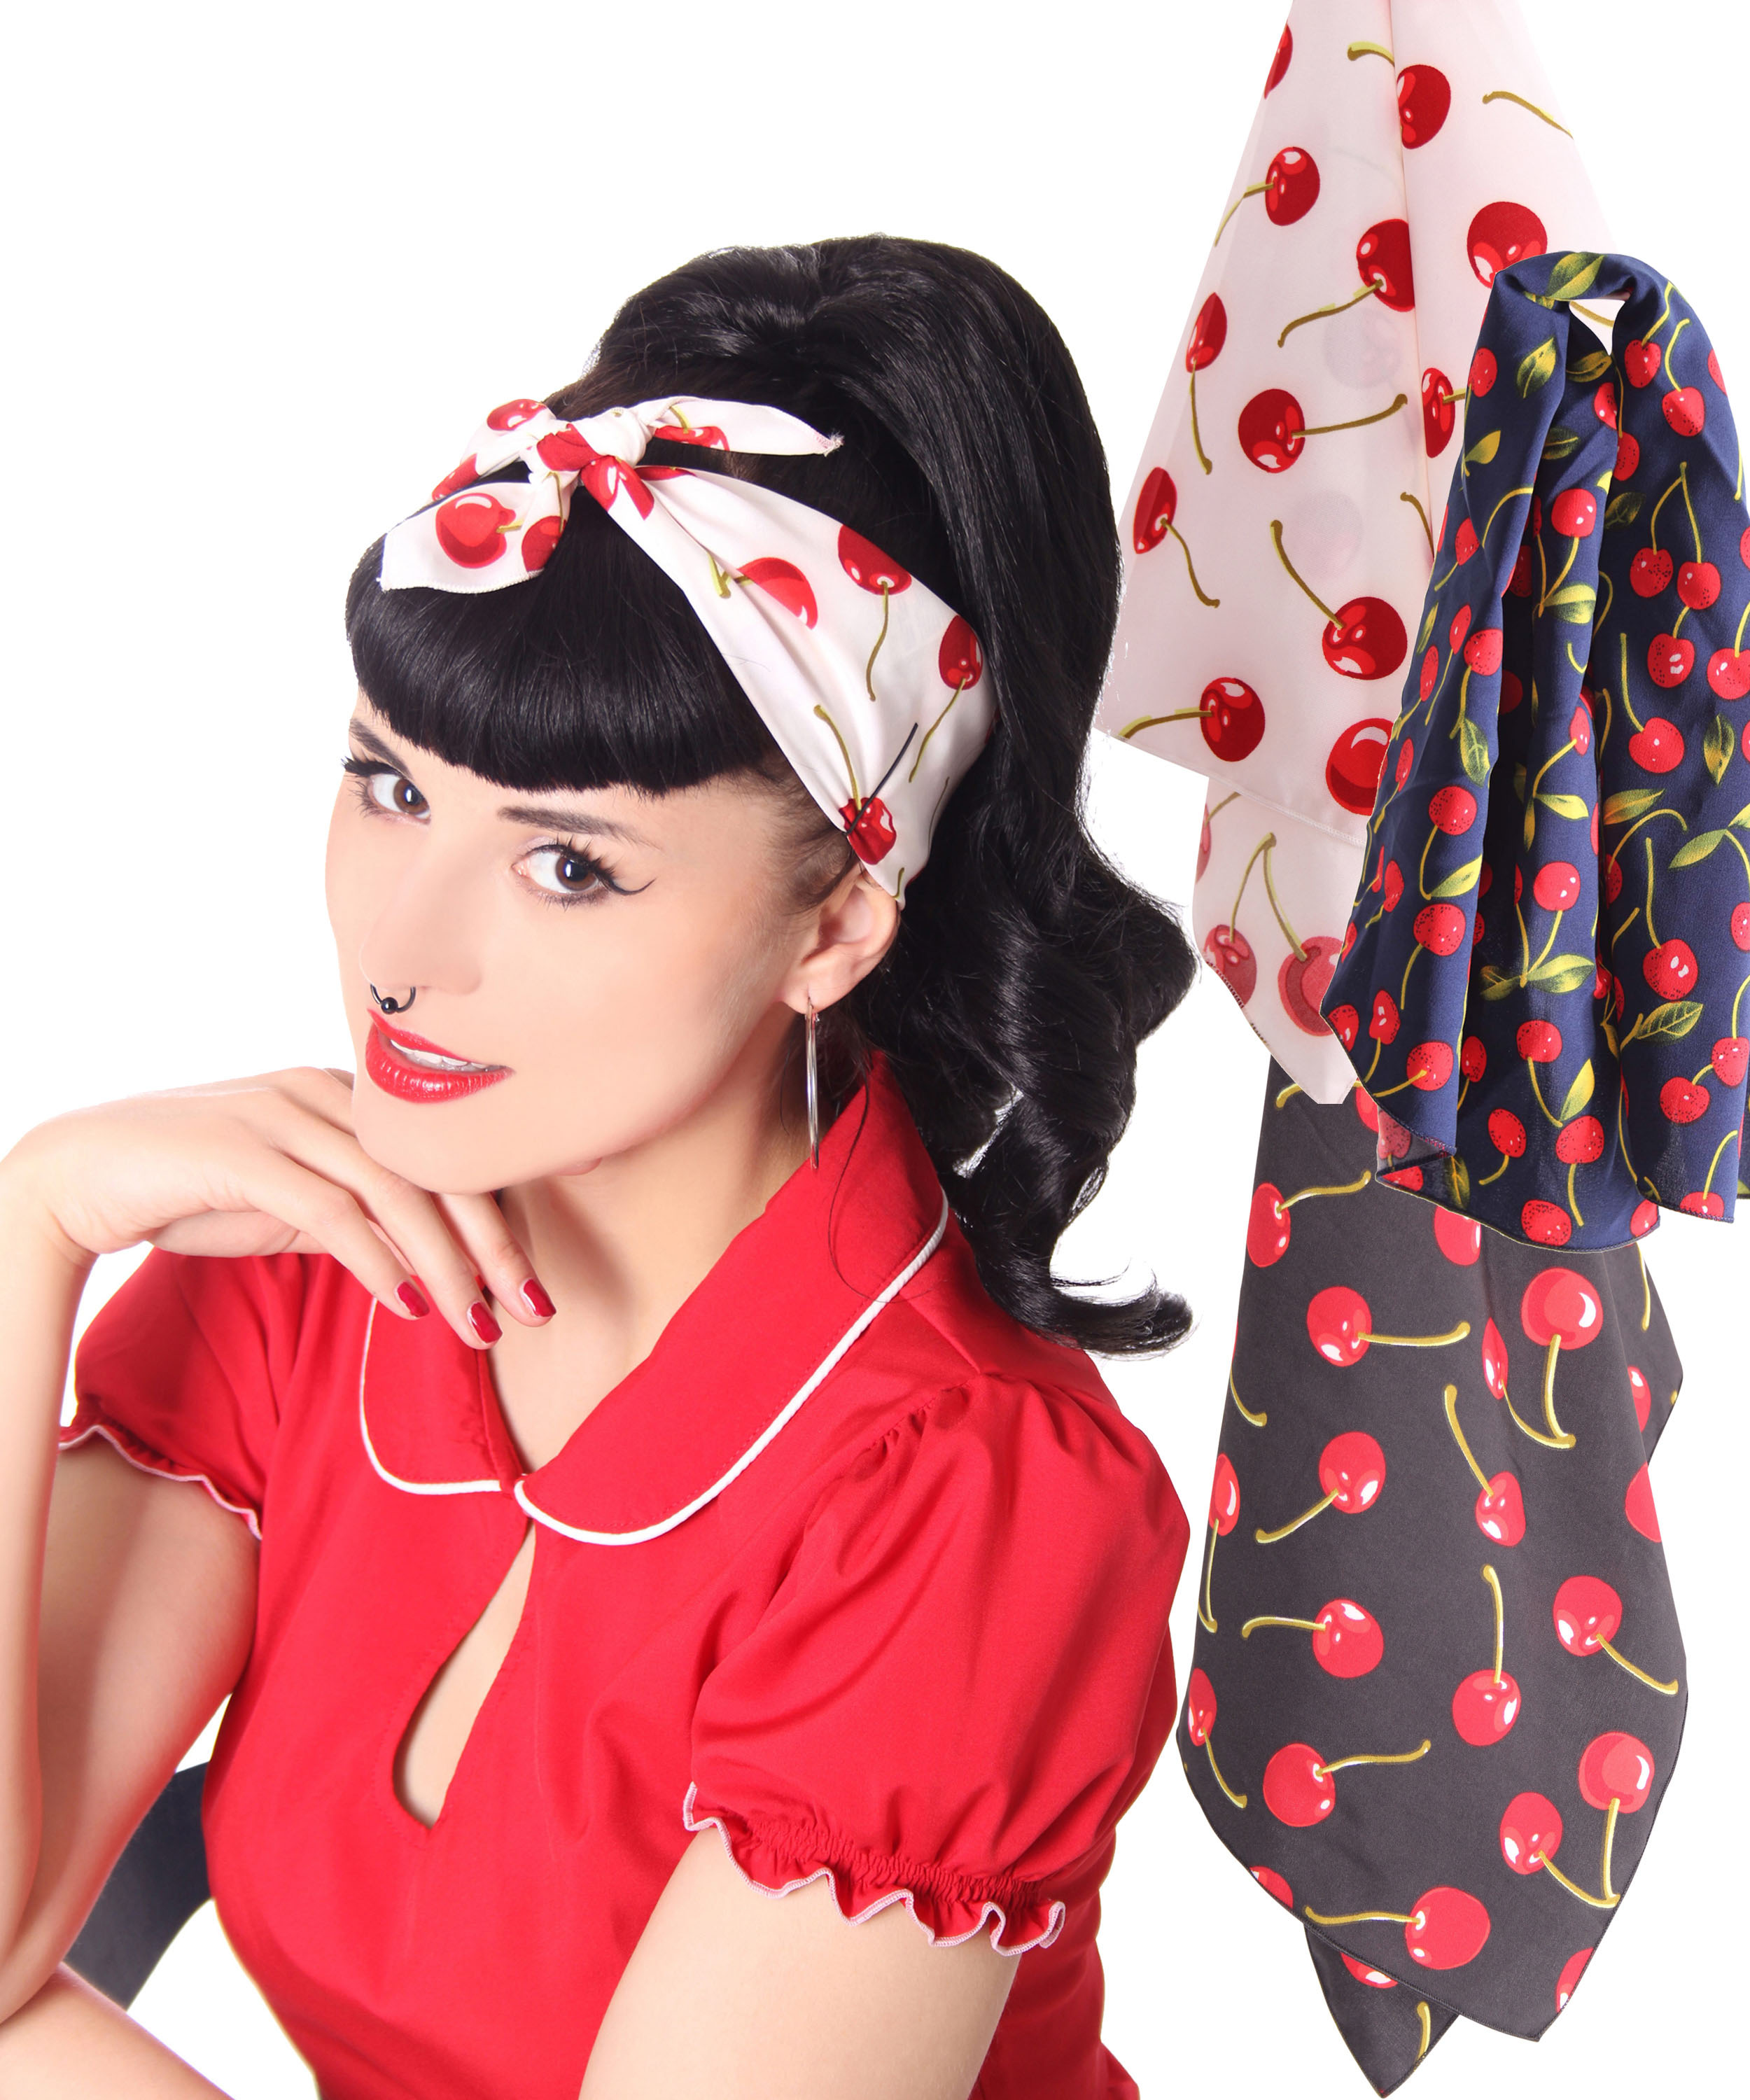 Rockabilly Frisuren Frauen Tuch Frisuren Manner